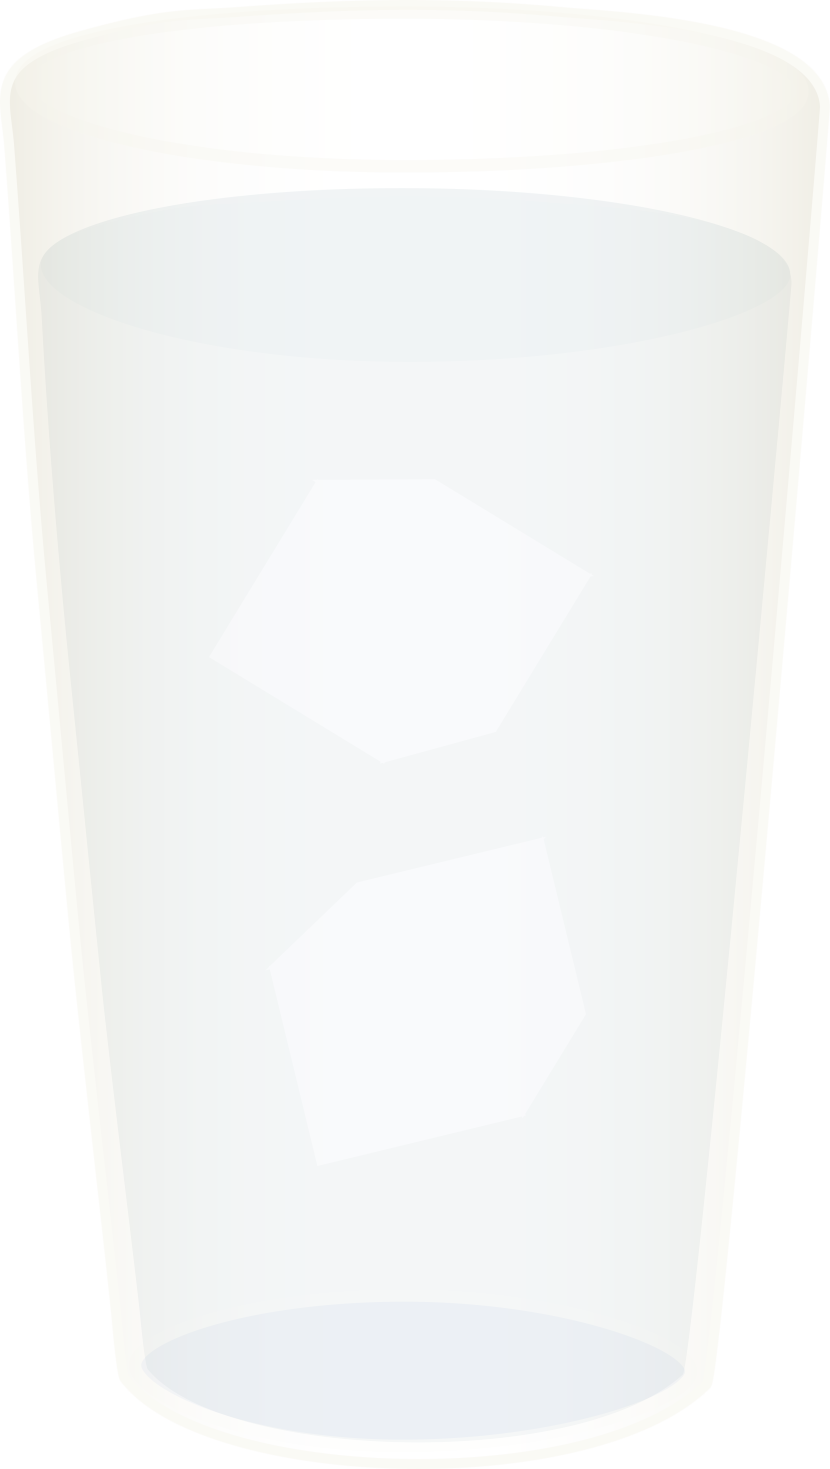 Cup Of Water Clipart - Clipartion.com